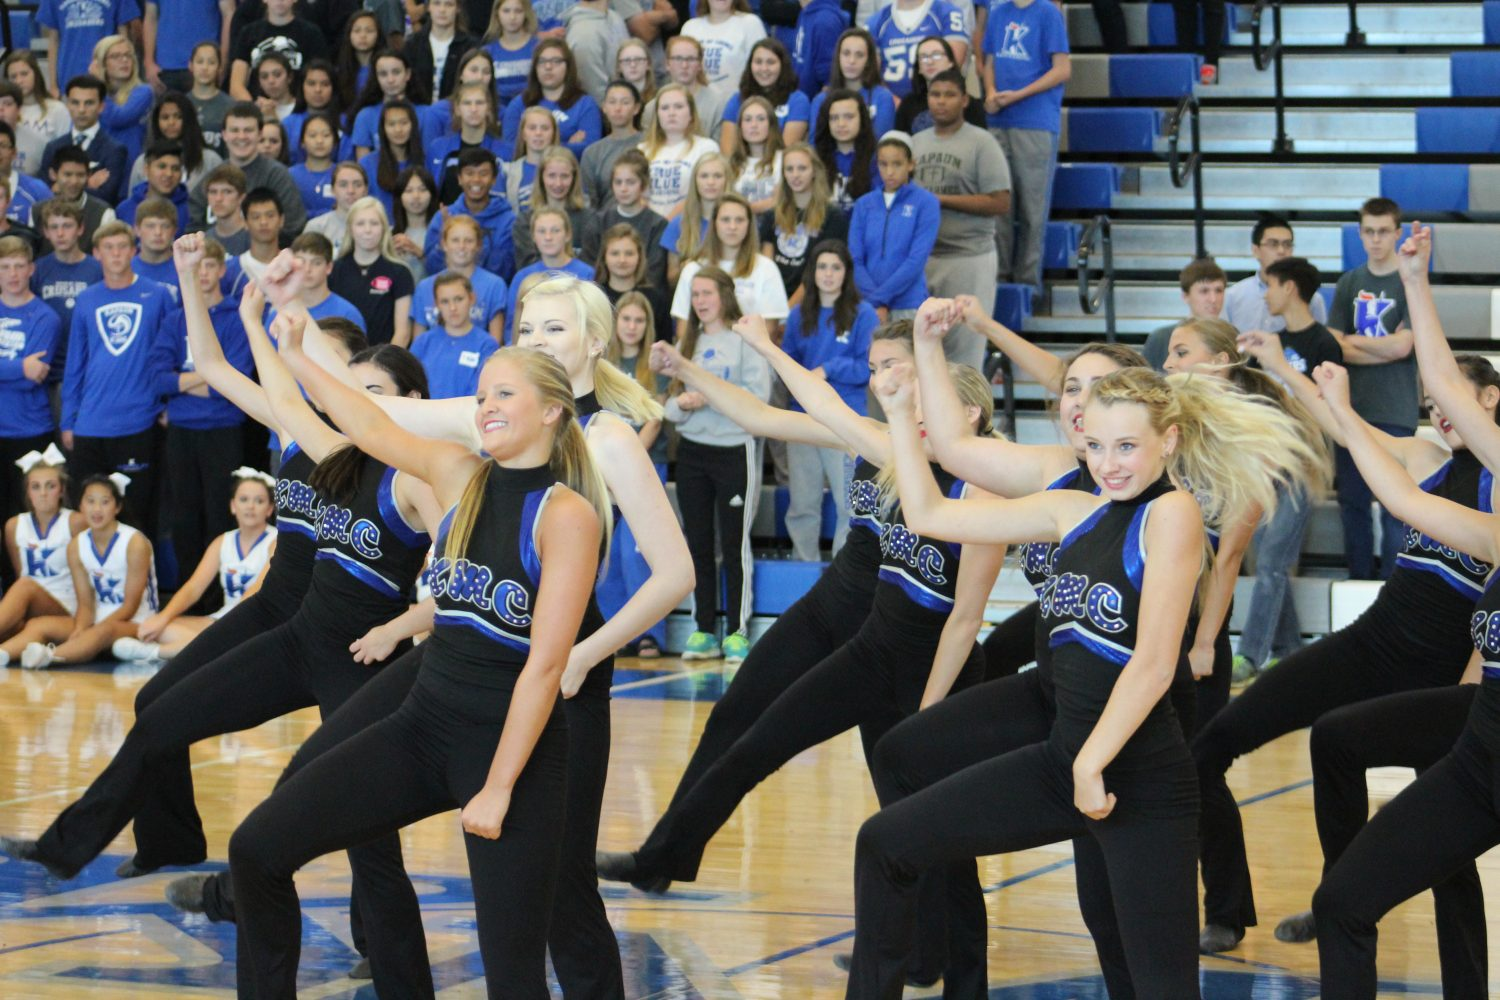 During the Homecoming Pep Rally, seniors Sabina Kelly and Lexi O'Malley lead the pom pon squad routine Oct 2. Photo by Nikki Bulger, staff photographer